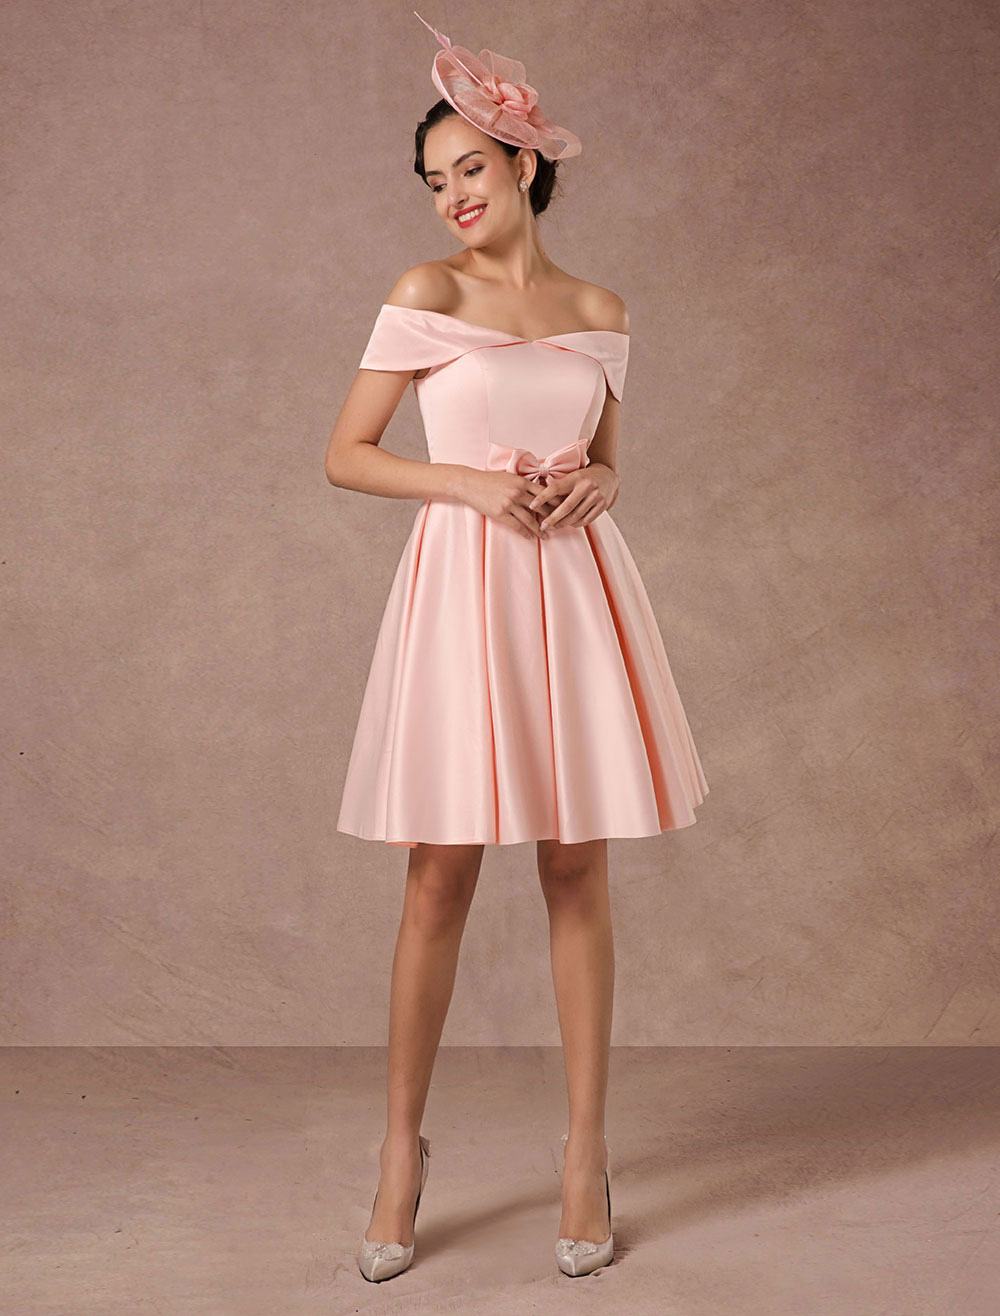 Short wedding dress pink off the shoulder satin vintage for Wedding dresses to buy off the rack